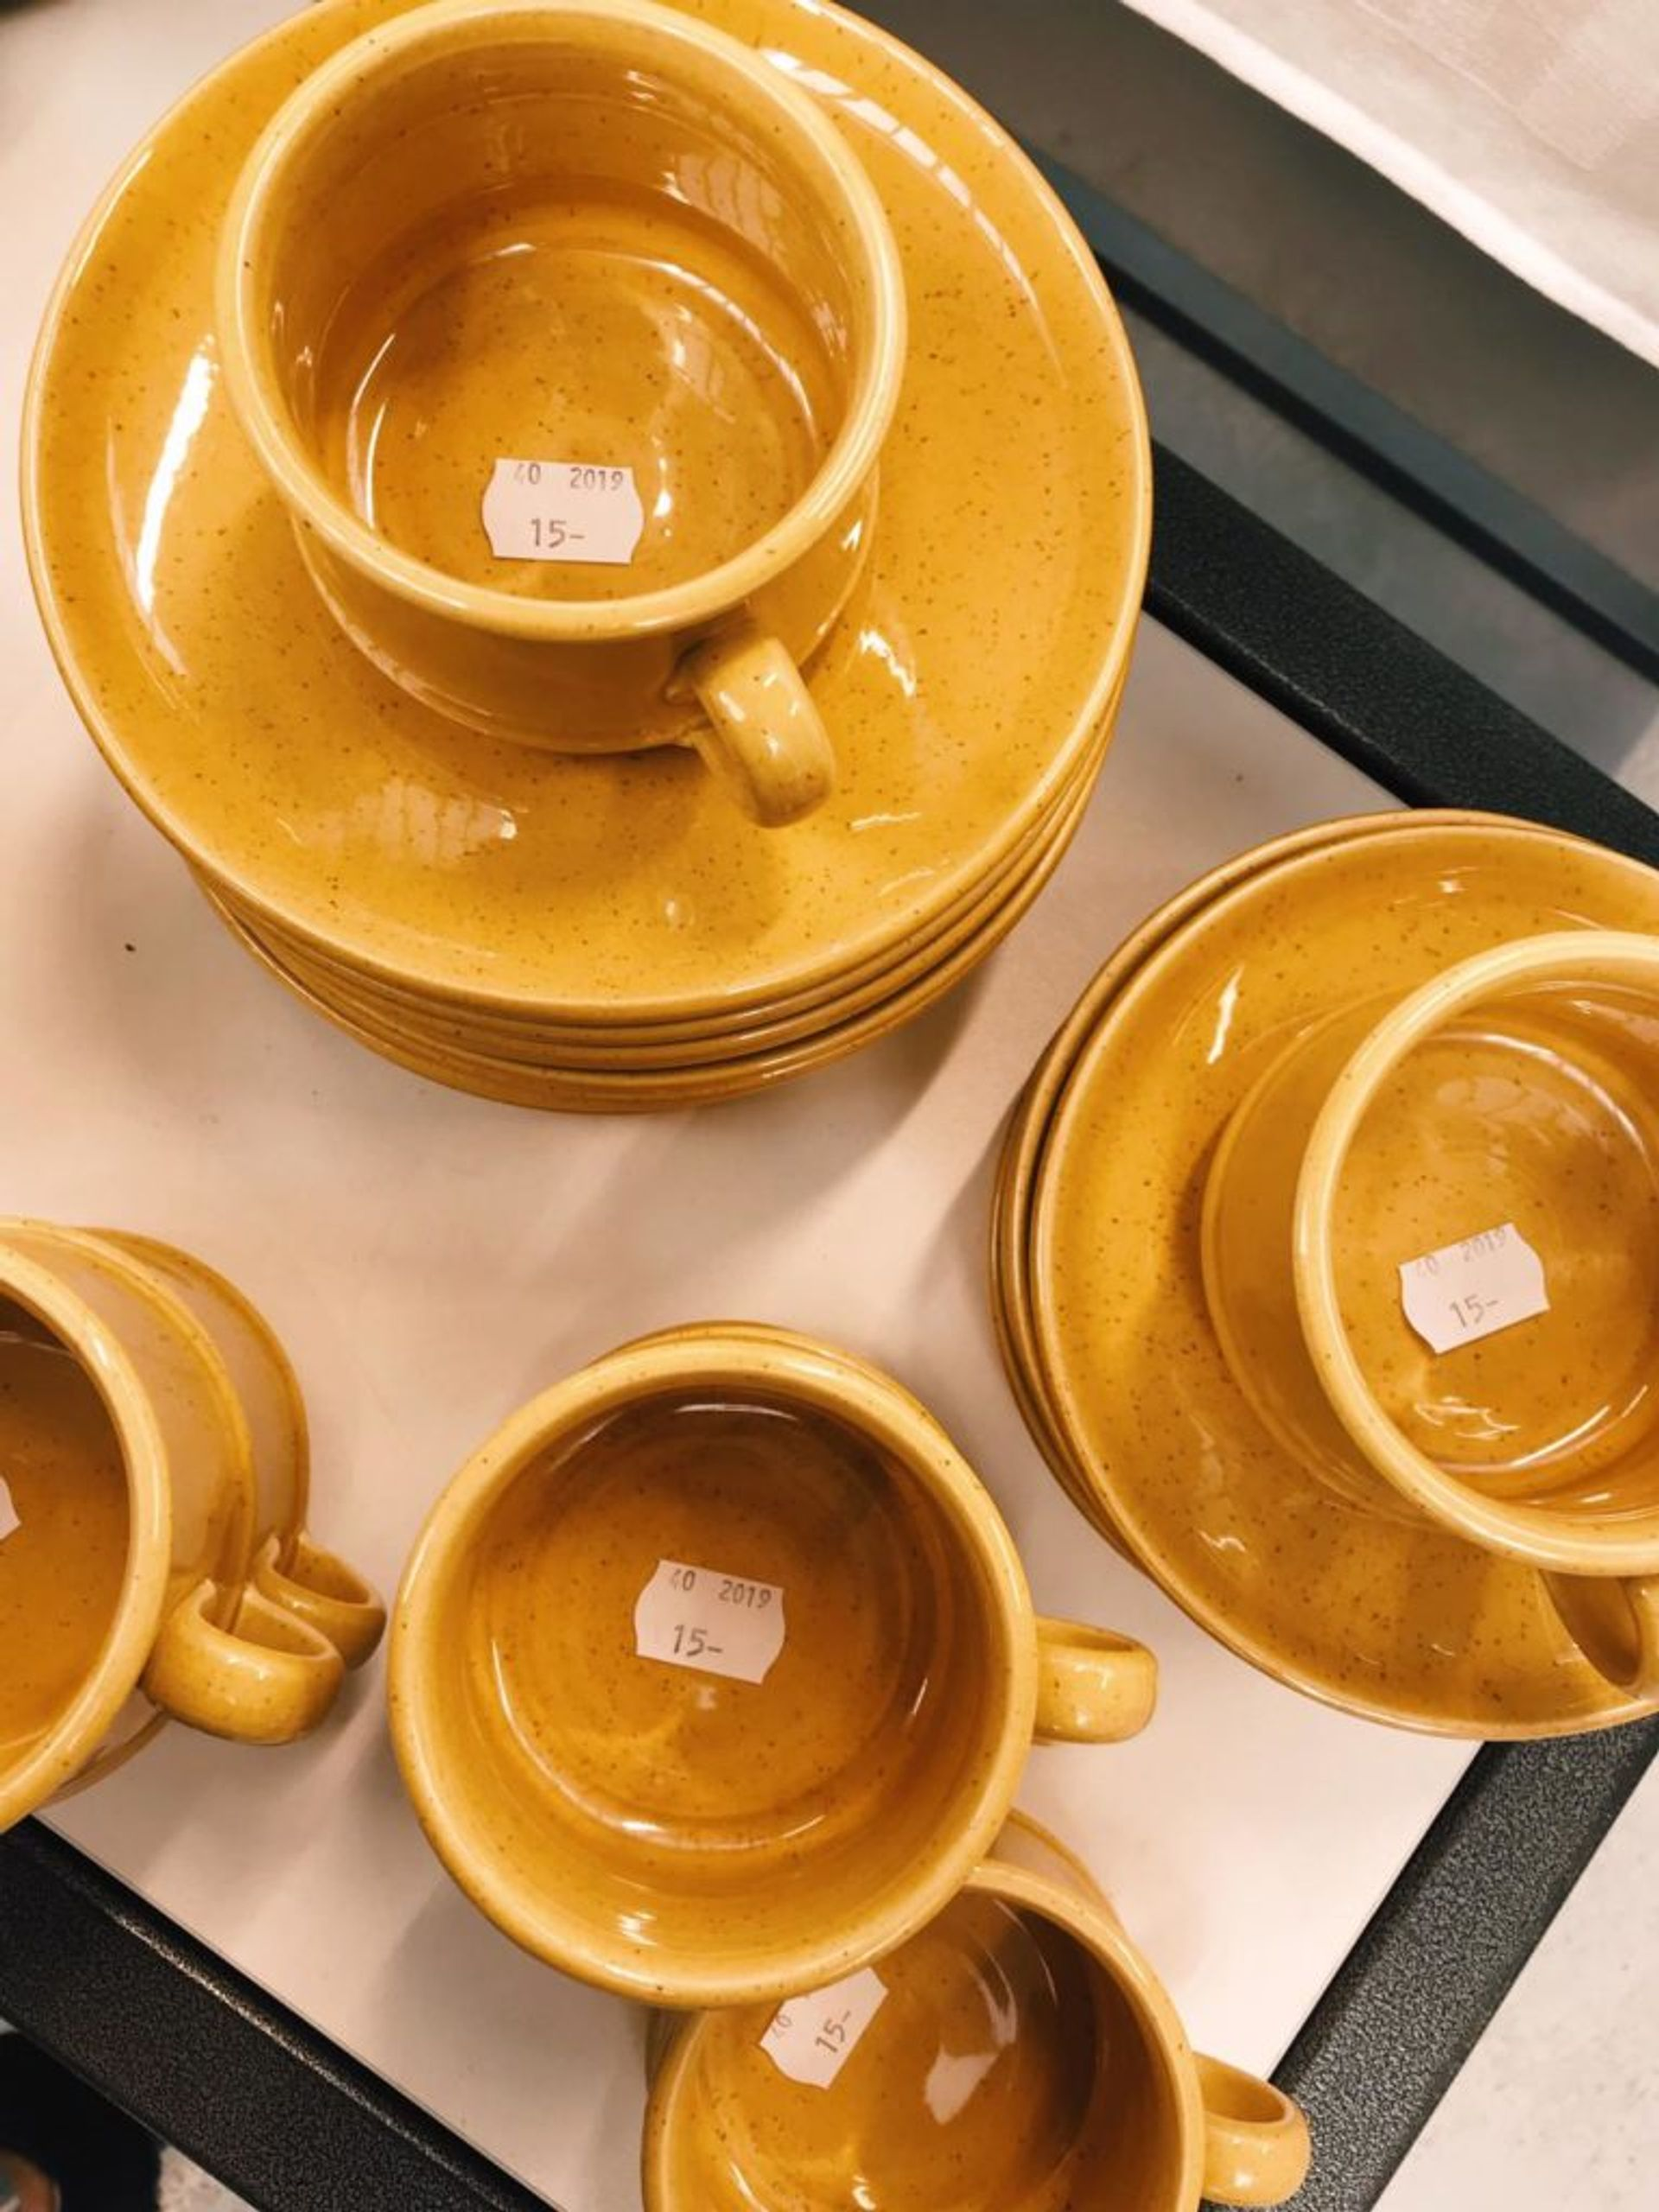 Close-up of mustard yellow cups and saucers.